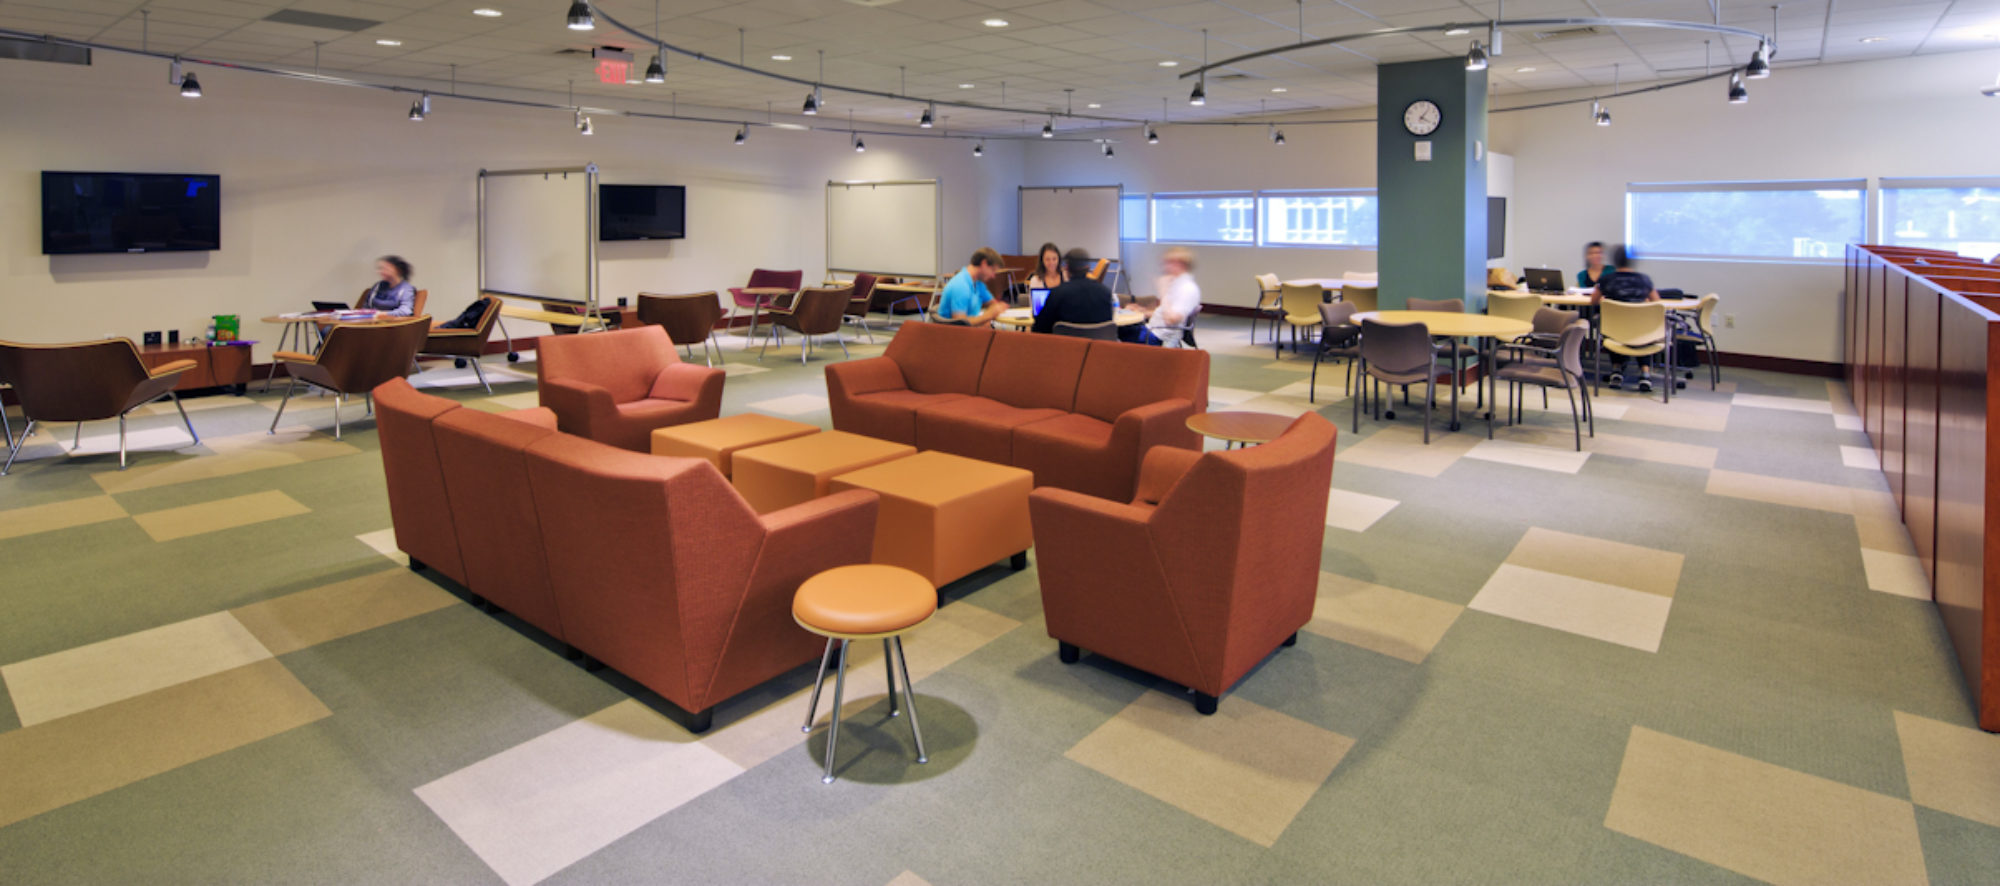 The new leisure reading area of the UNLV Lied Library, designed by LGA Architecture.